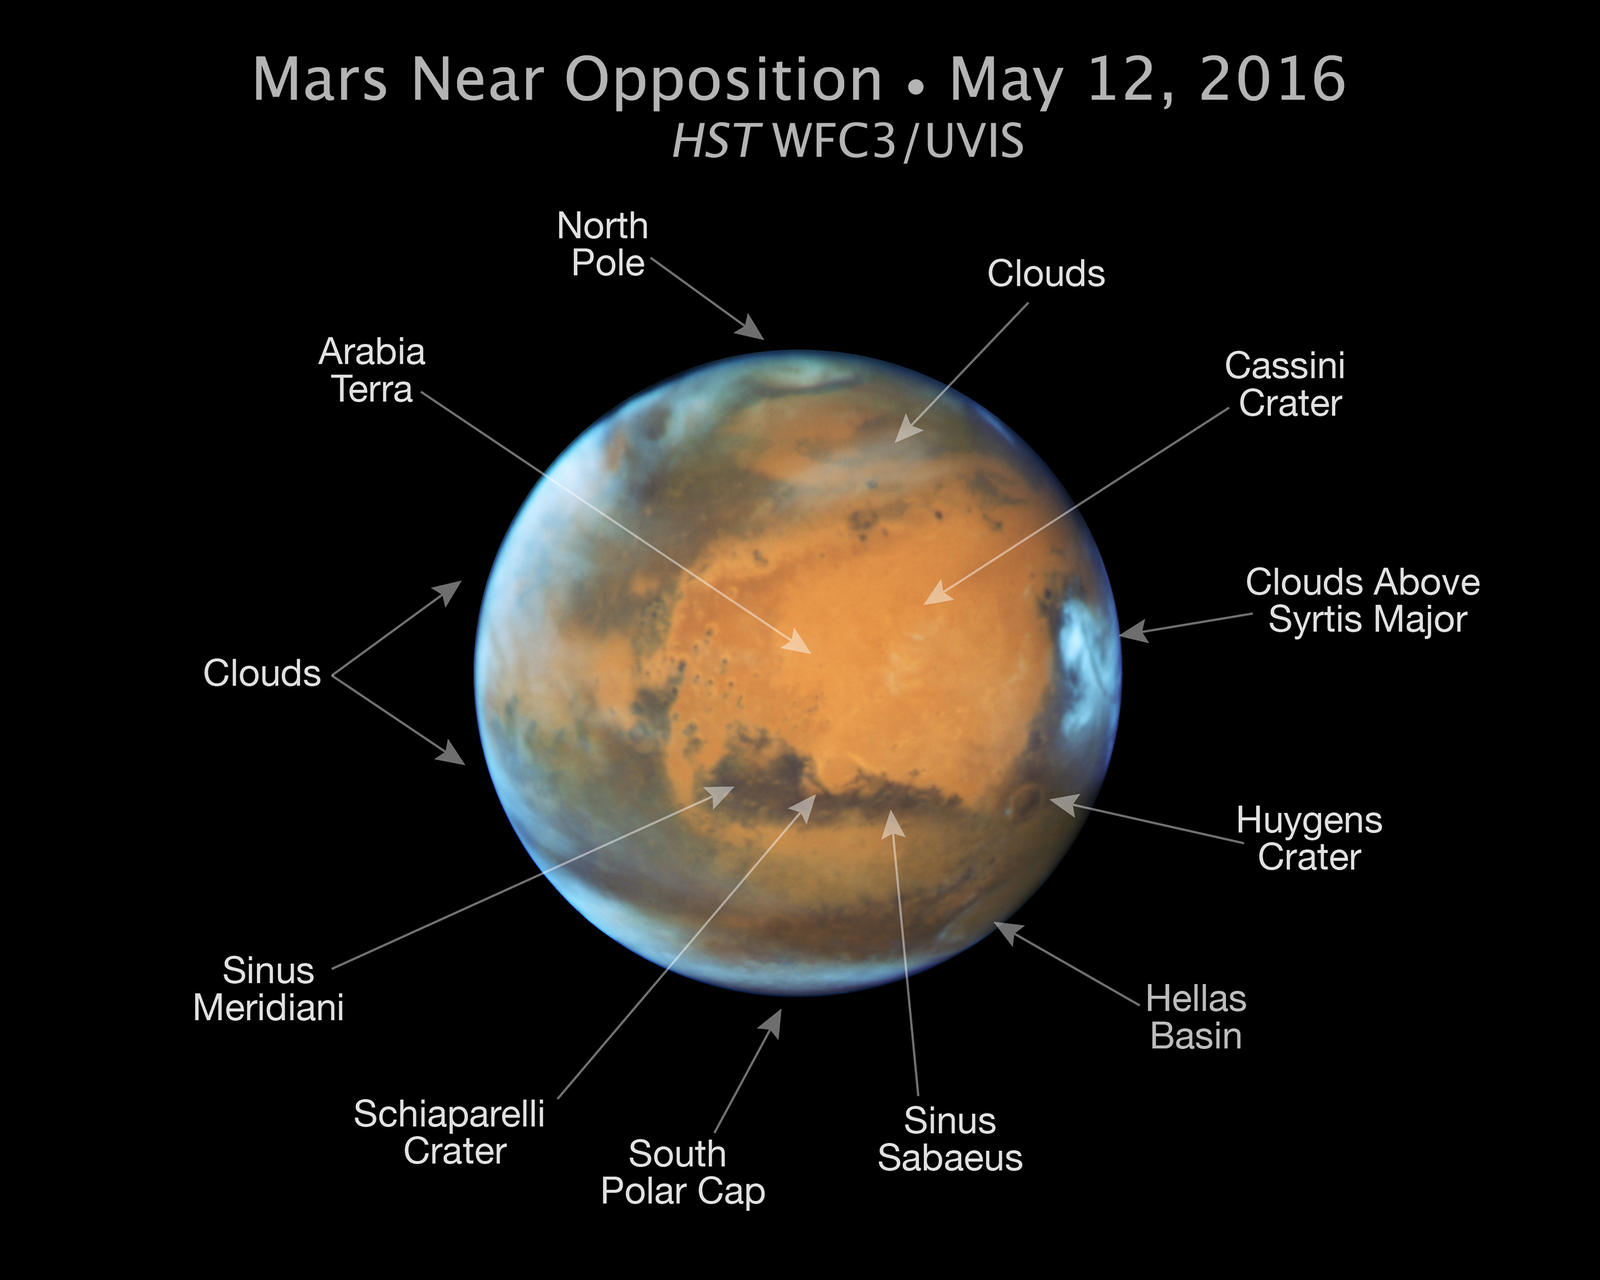 Mars Near 2016 Oppostion (Annotated)